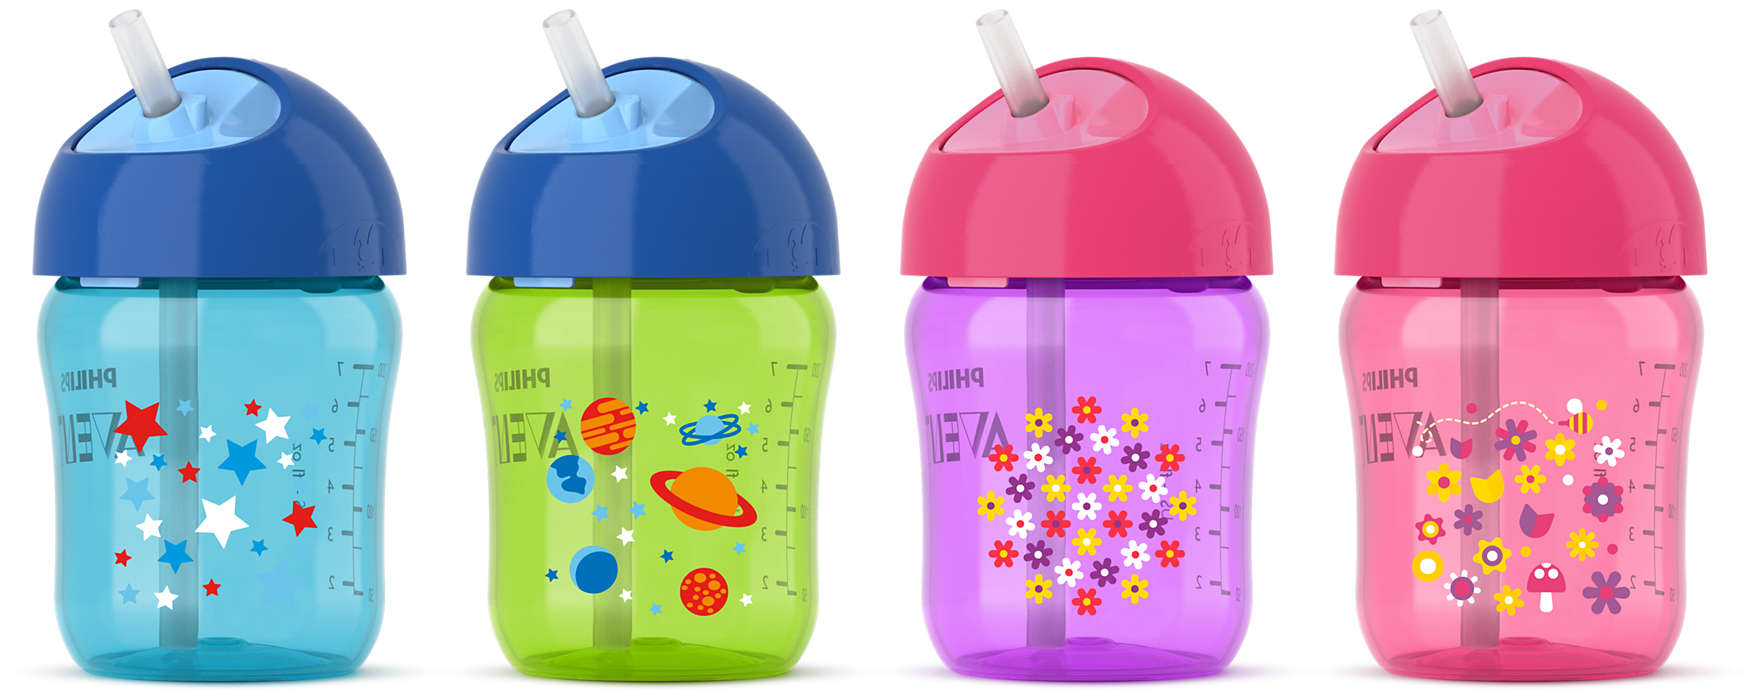 100 are avent bottles dishwasher safe best anti colic